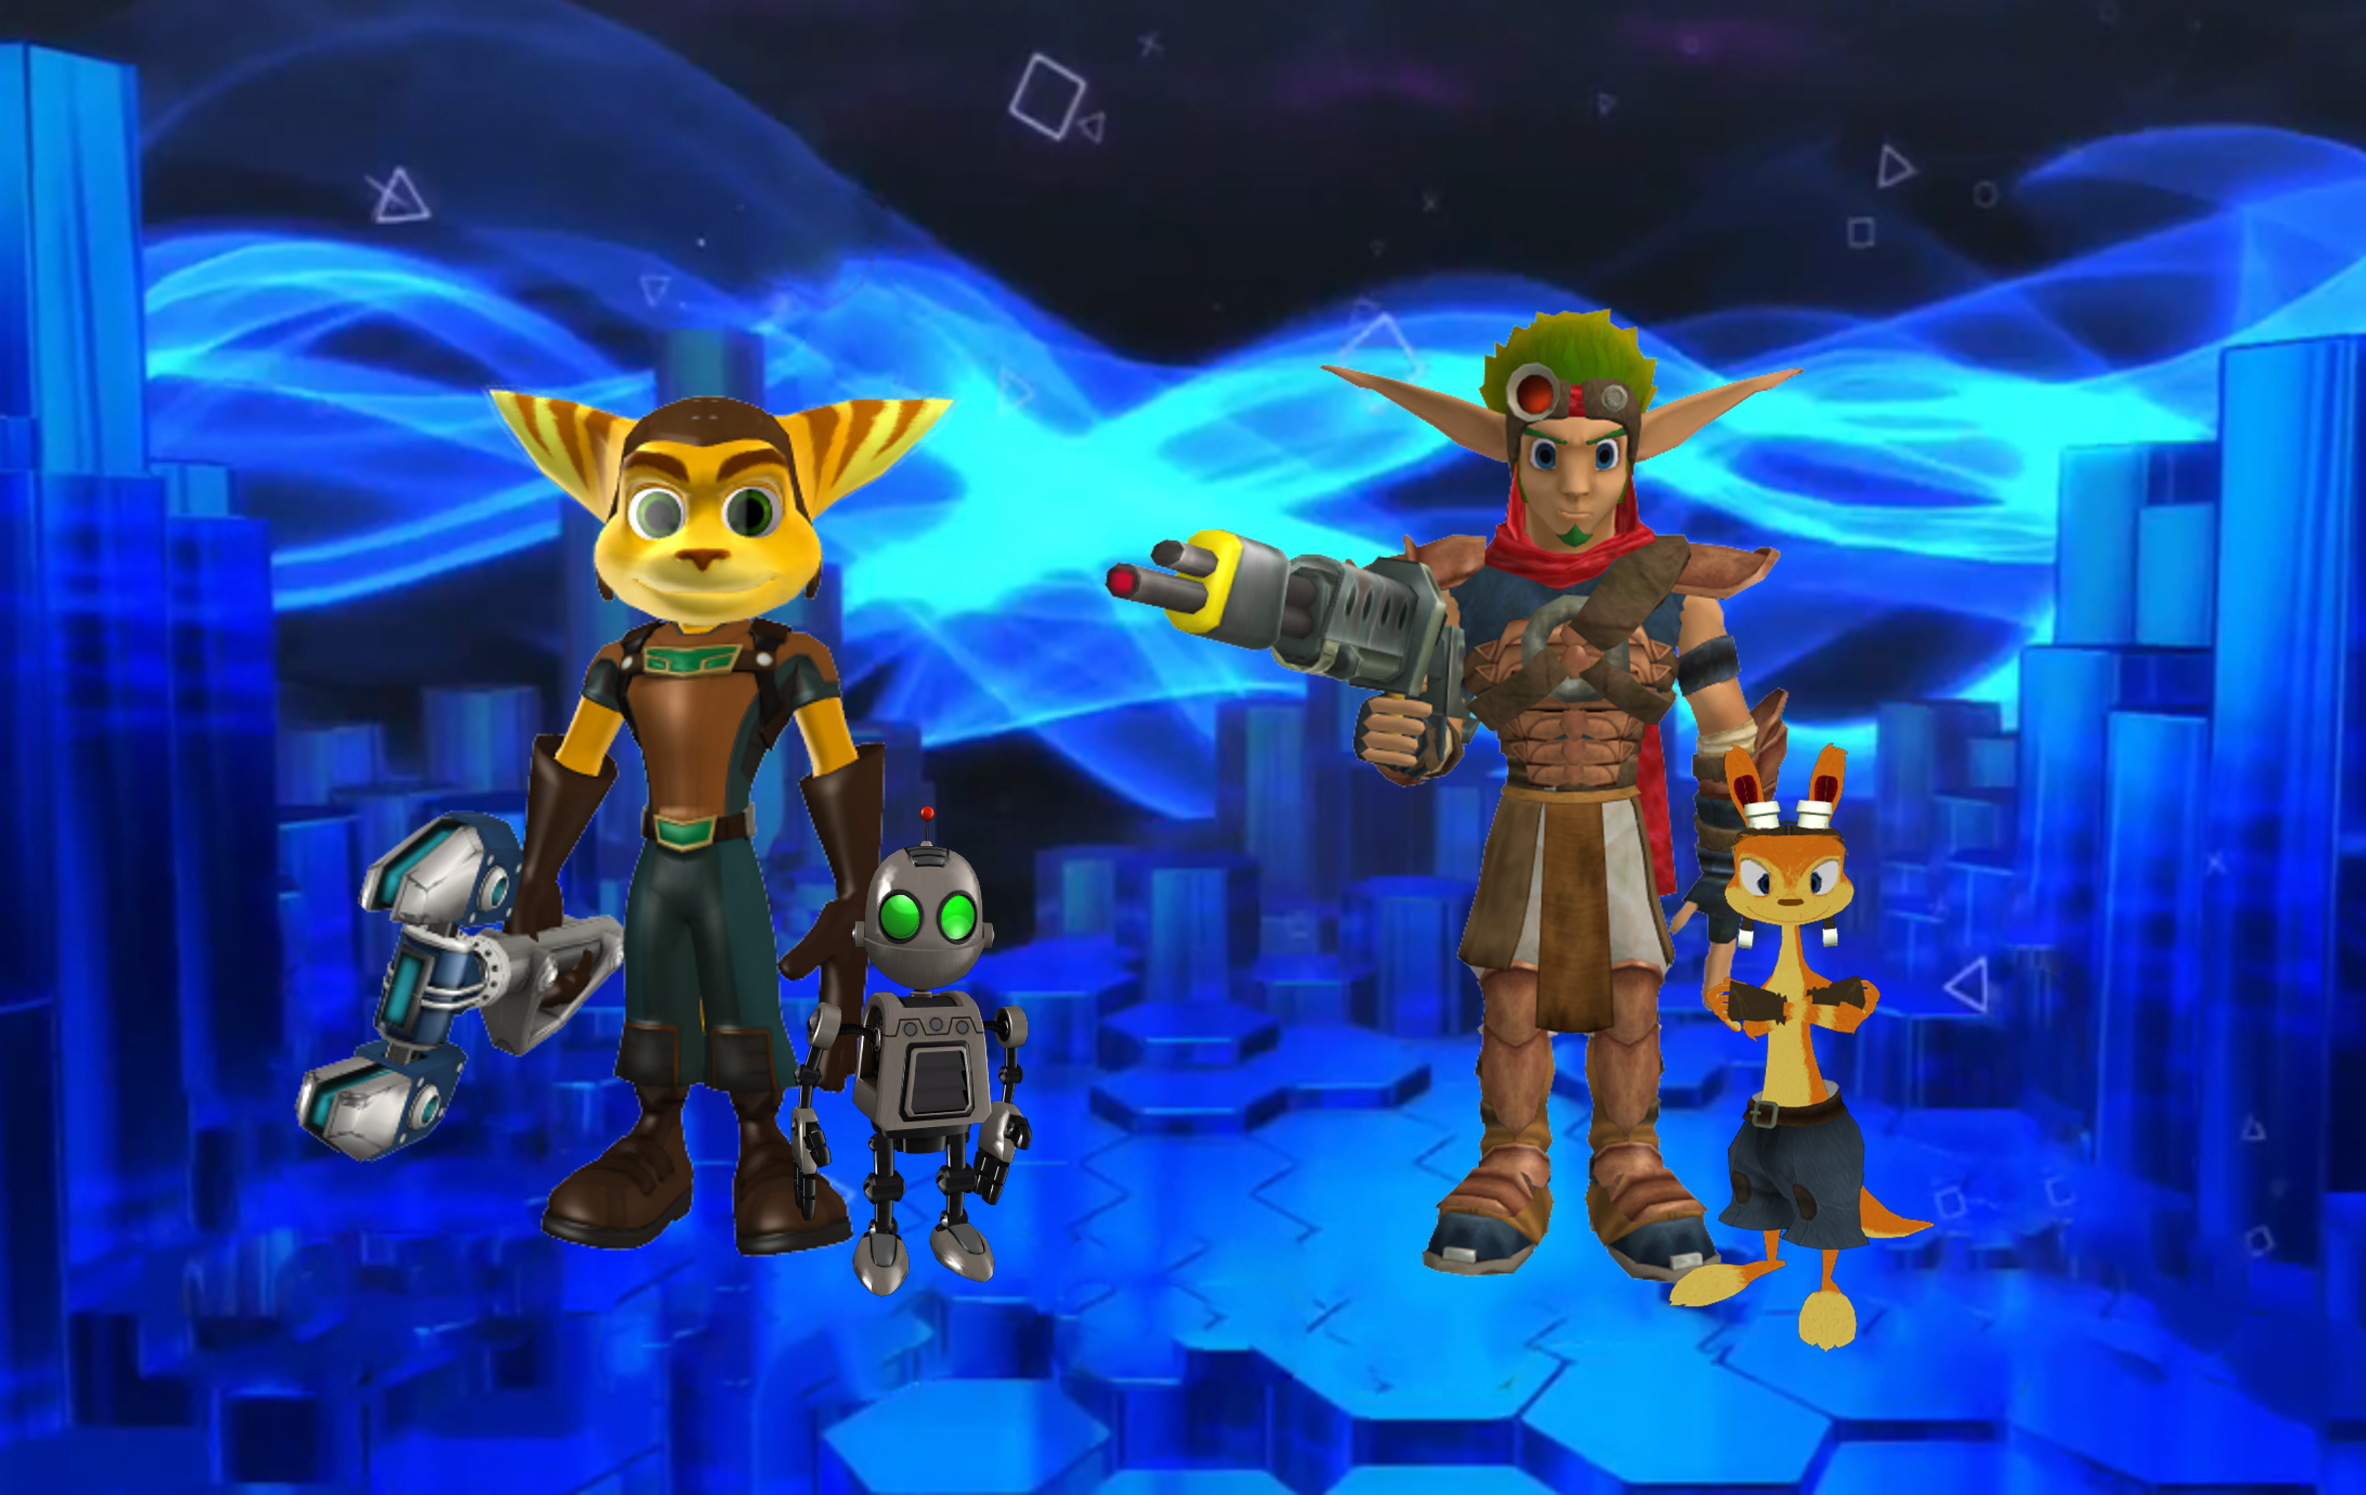 Jak And Daxter Wallpaper 12835803: Jak And Ratchet Imágenes Ratchet And Clank And Jak And